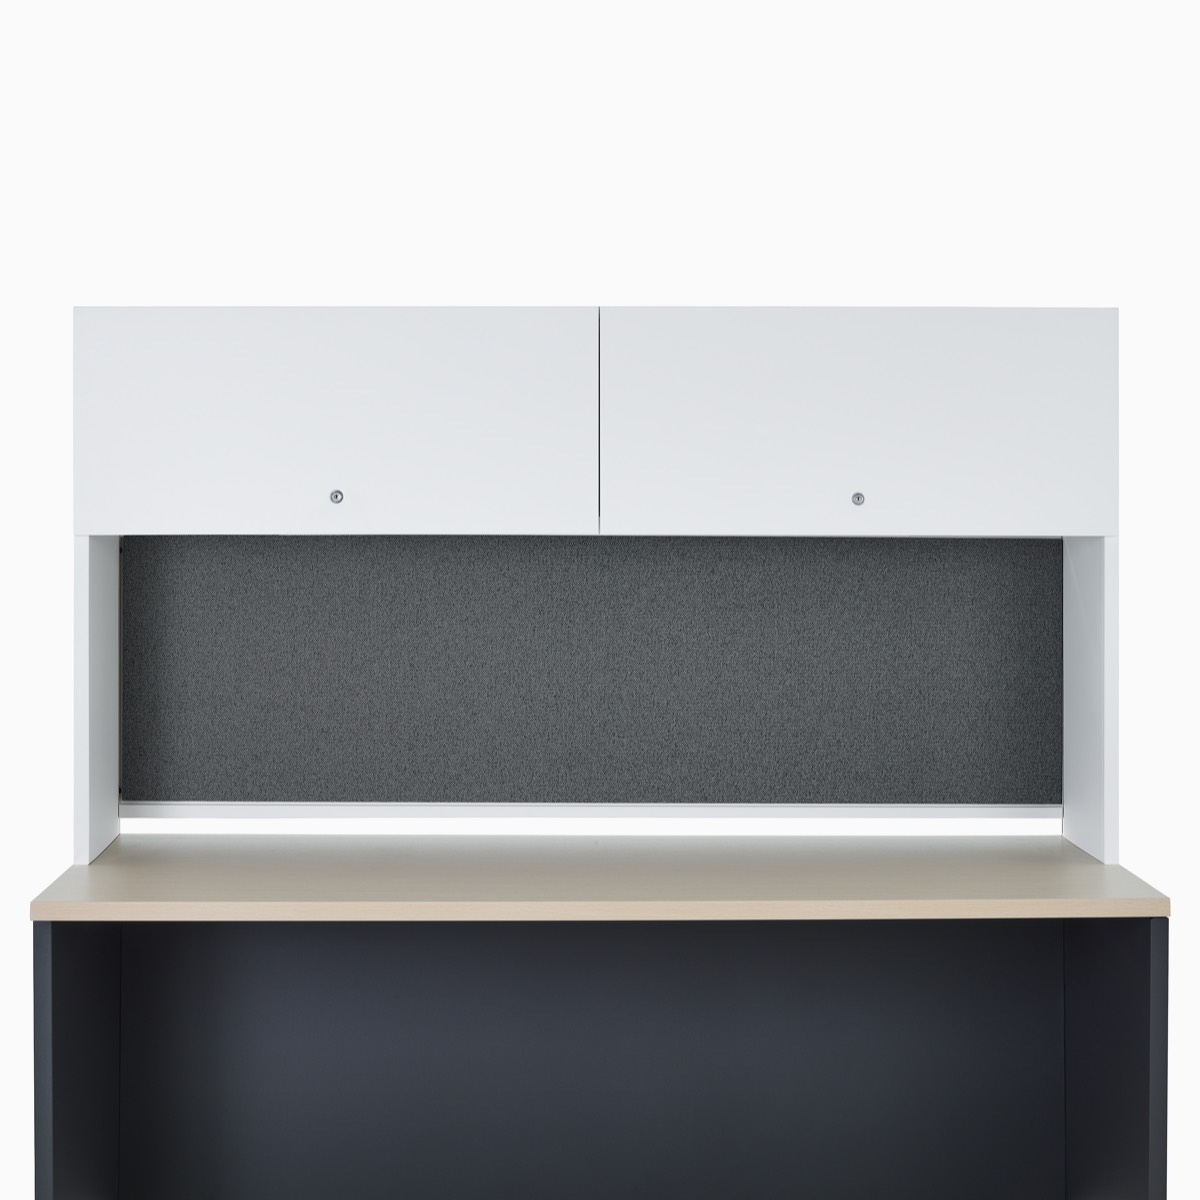 A Canvas Metal Desk with a white storage hutch.